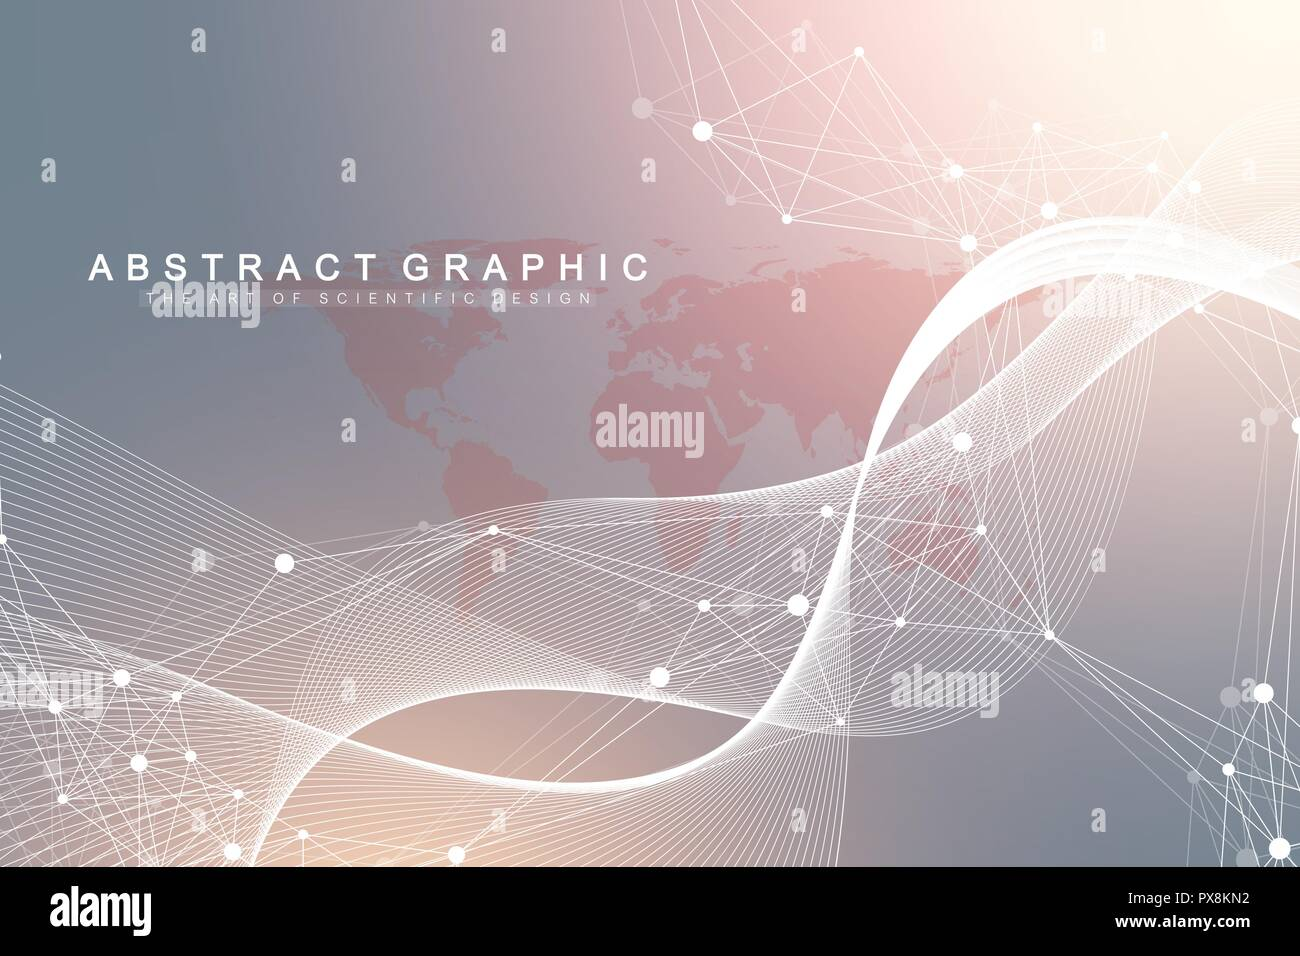 Big data visualization. Graphic abstract background communication. Perspective backdrop visualization. Analytical network visualization. Vector illustration. - Stock Image